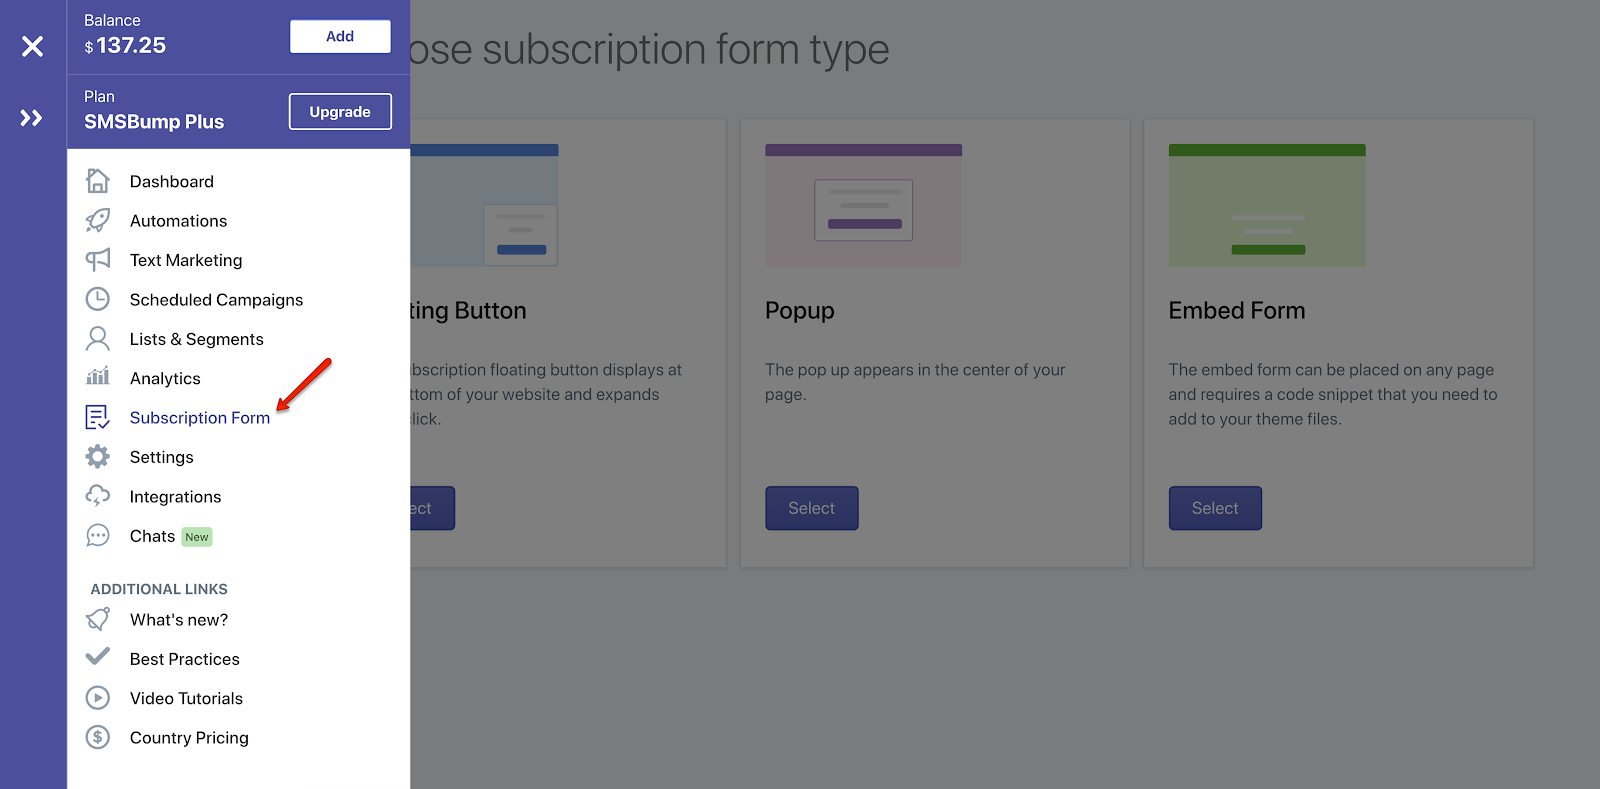 SMSBump_side_menu_form_type